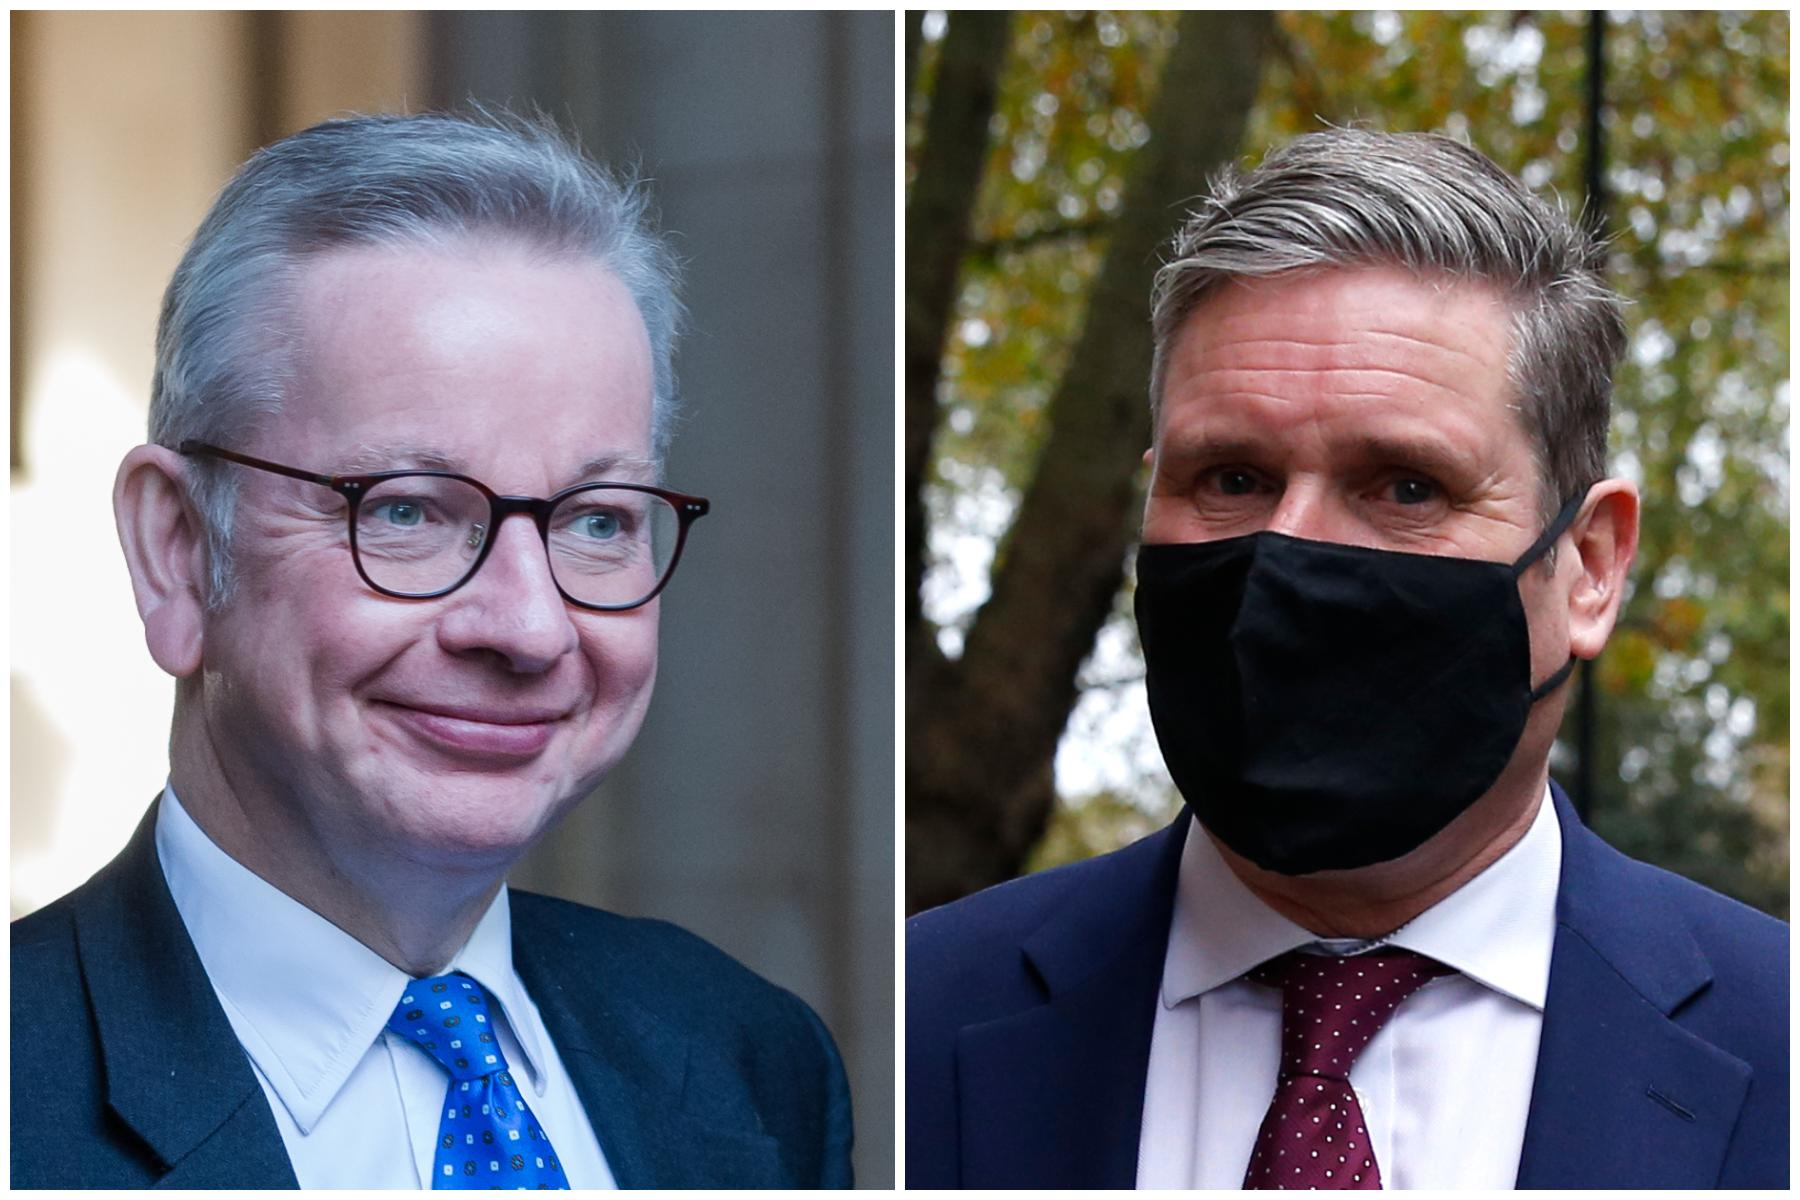 Labour MP tells Michael Gove to 'do one' over Keir Starmer criticism